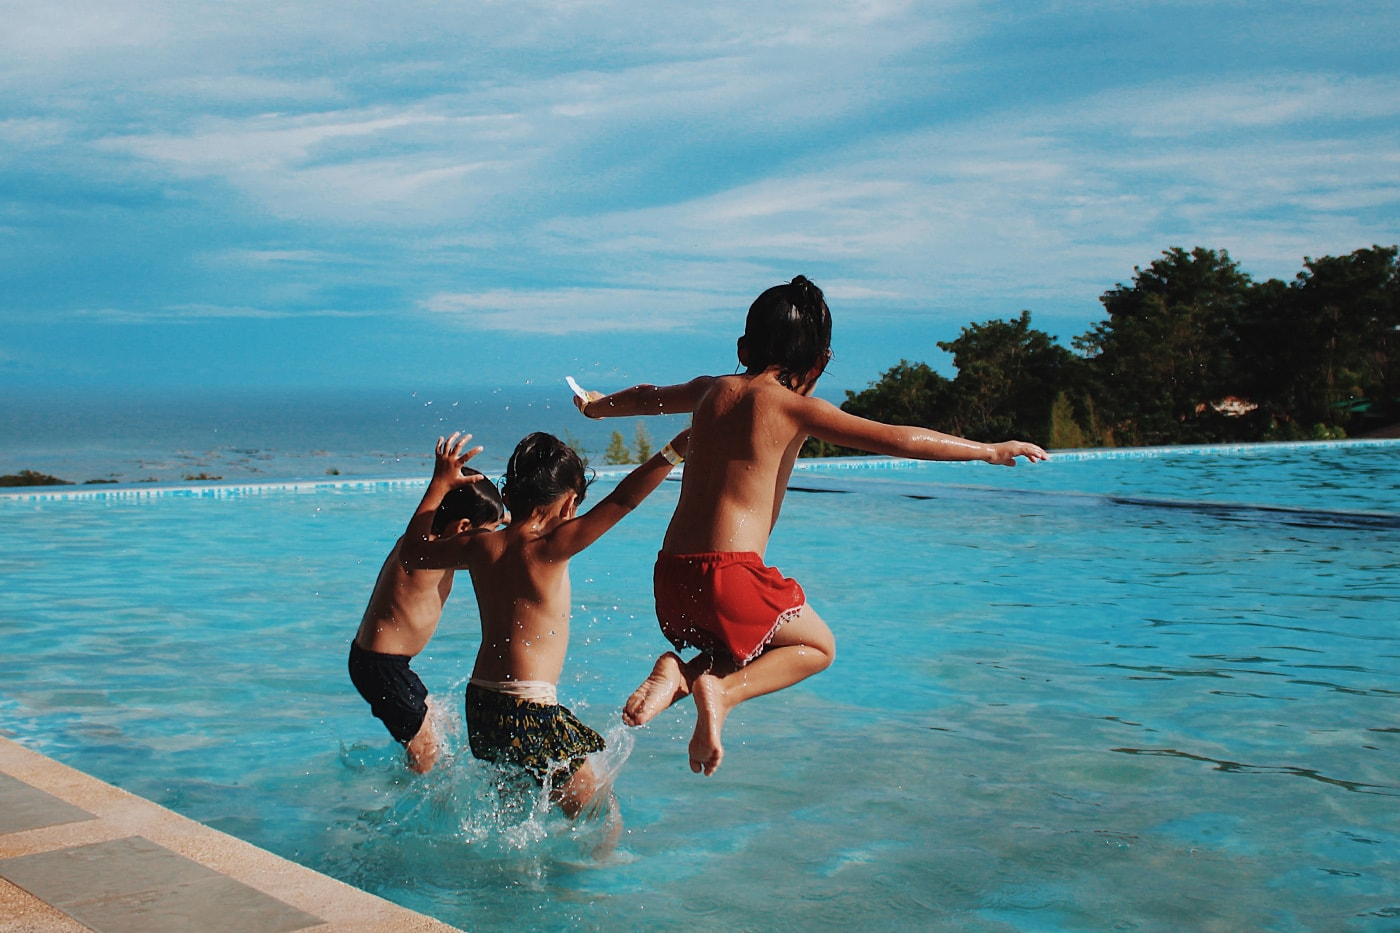 3 boys jumping into a swimming pool overlooking the ocean in summer